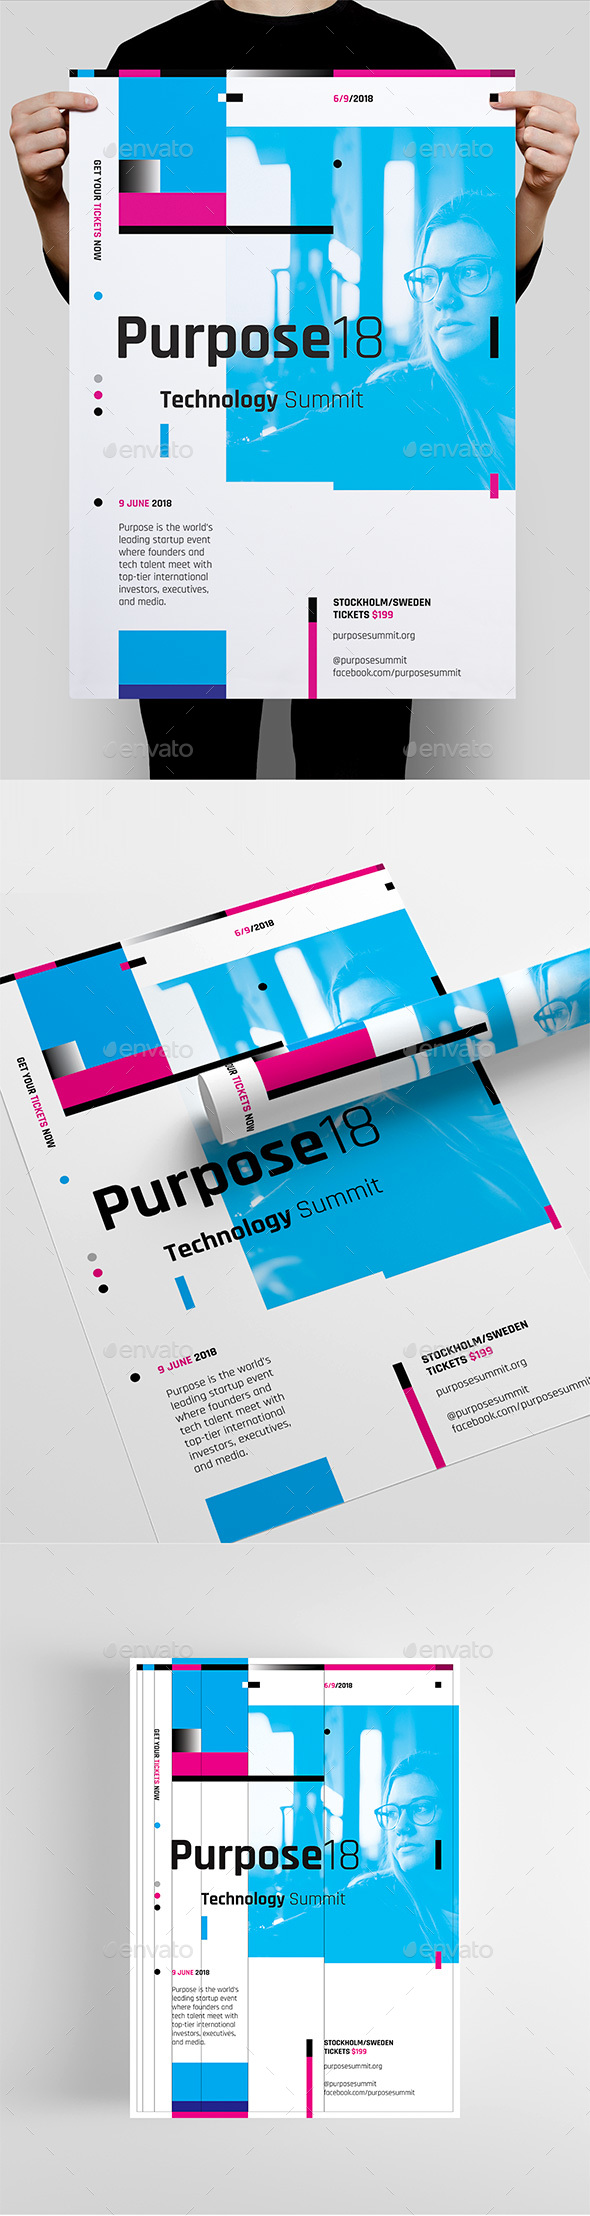 Purpose Series 1 Poster / Flyer Template - Corporate Flyers